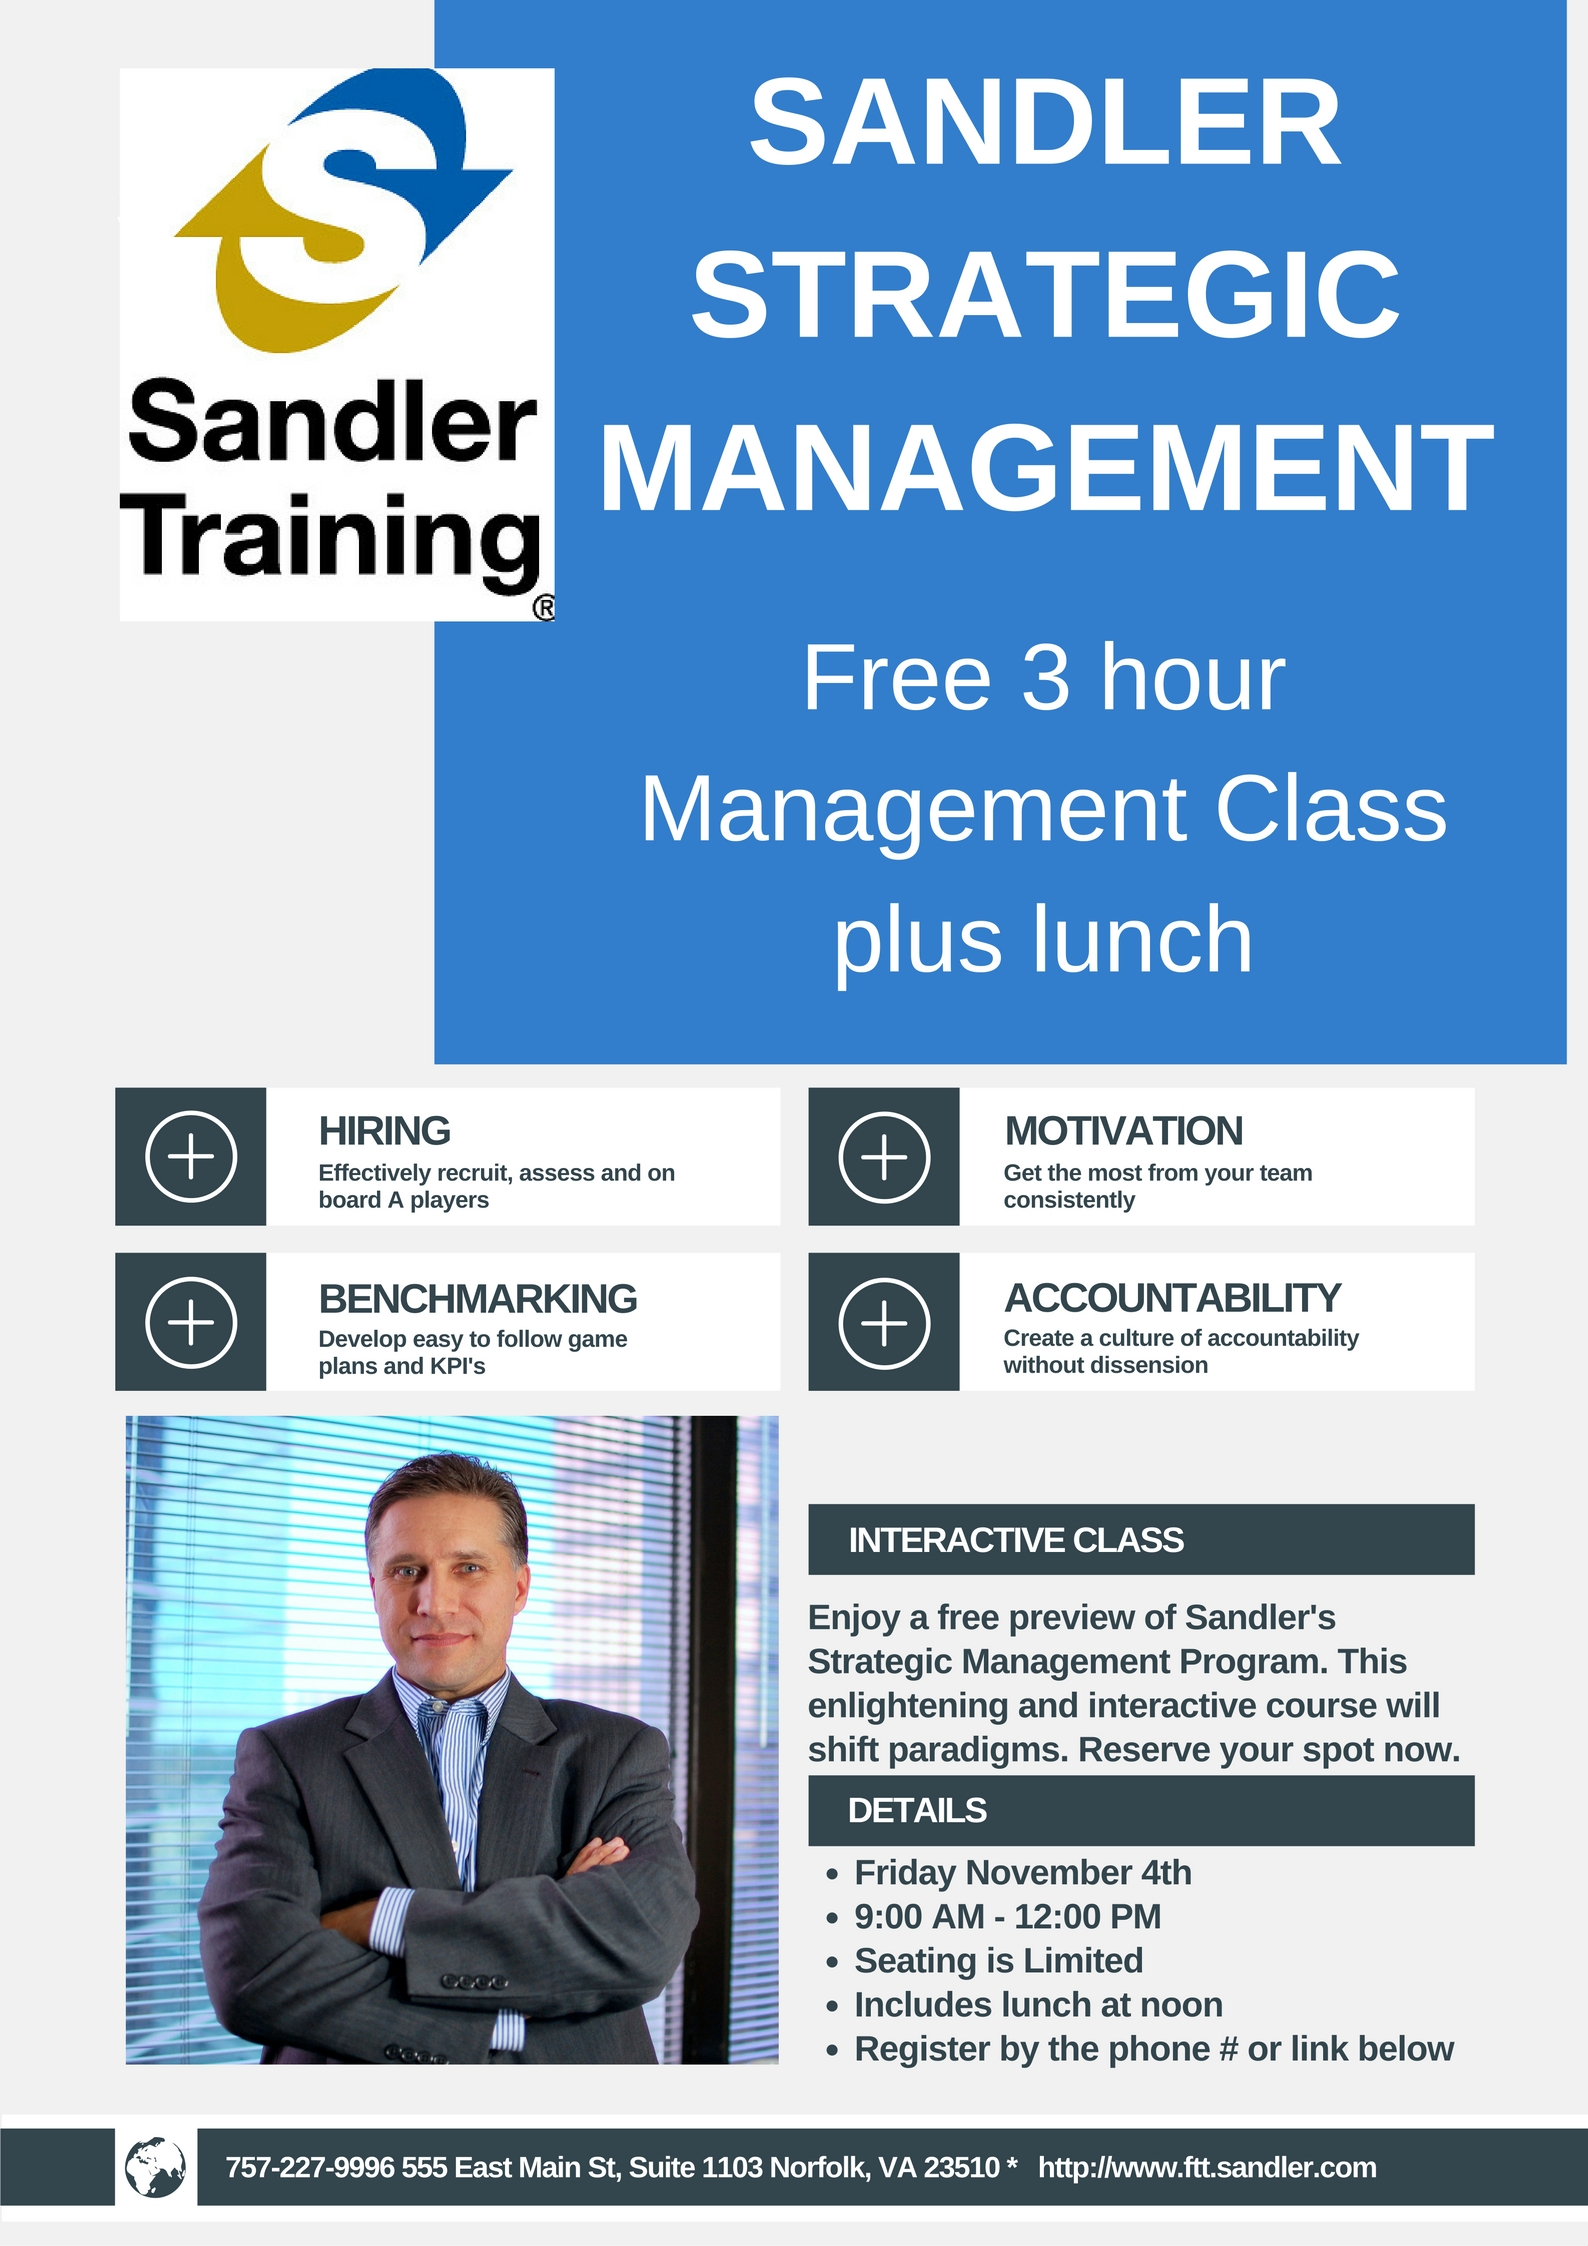 Sandler Strategic Management